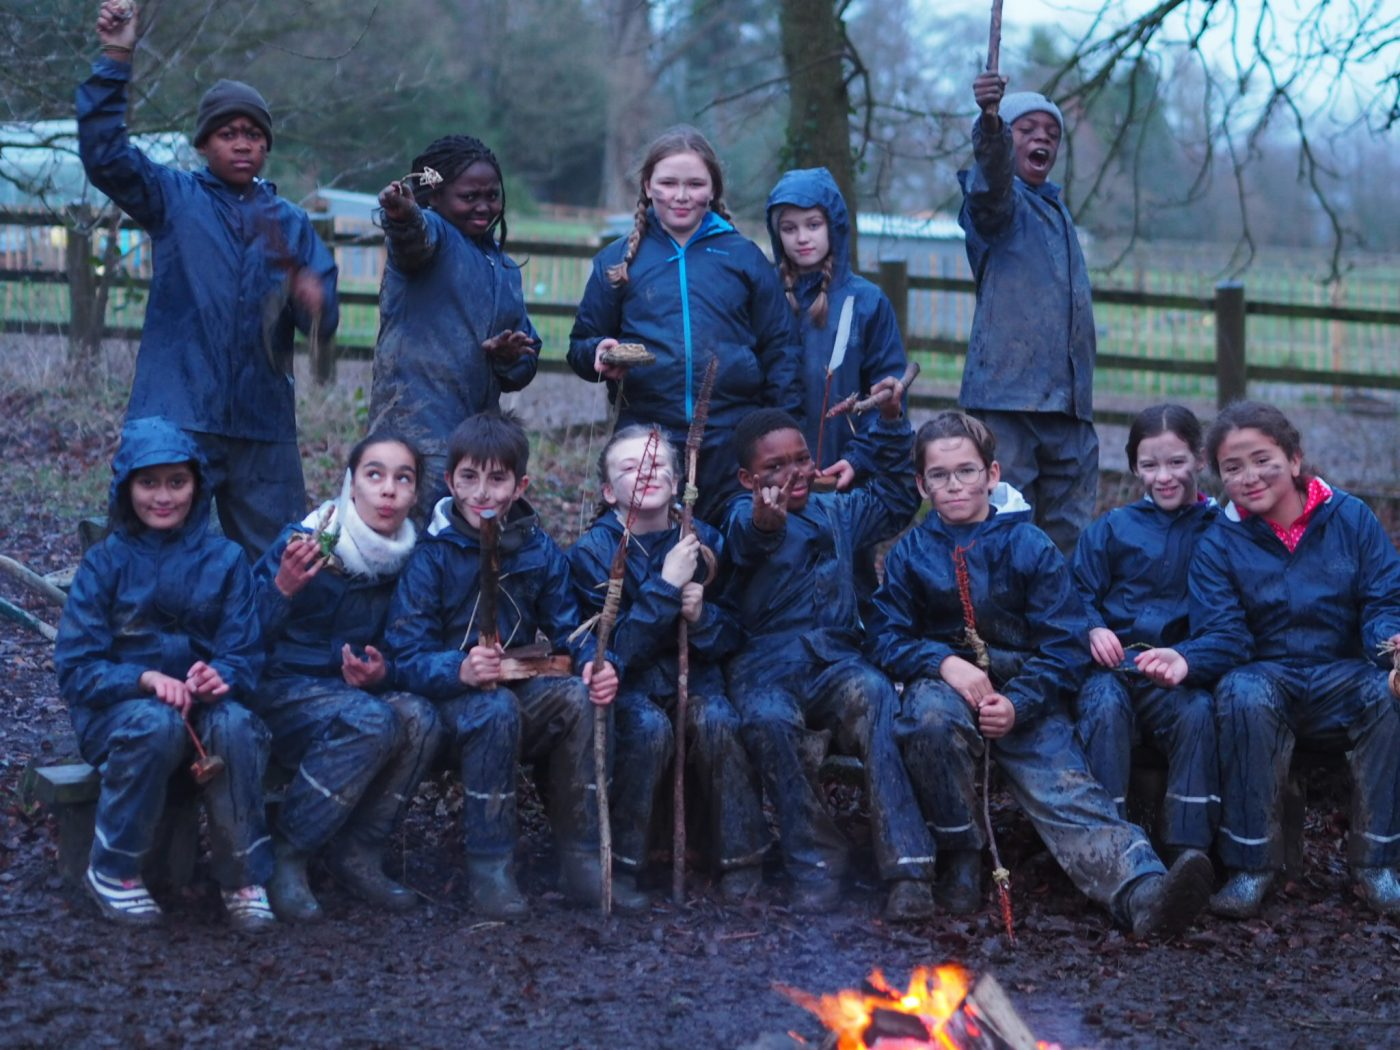 Forest school, outdoor education